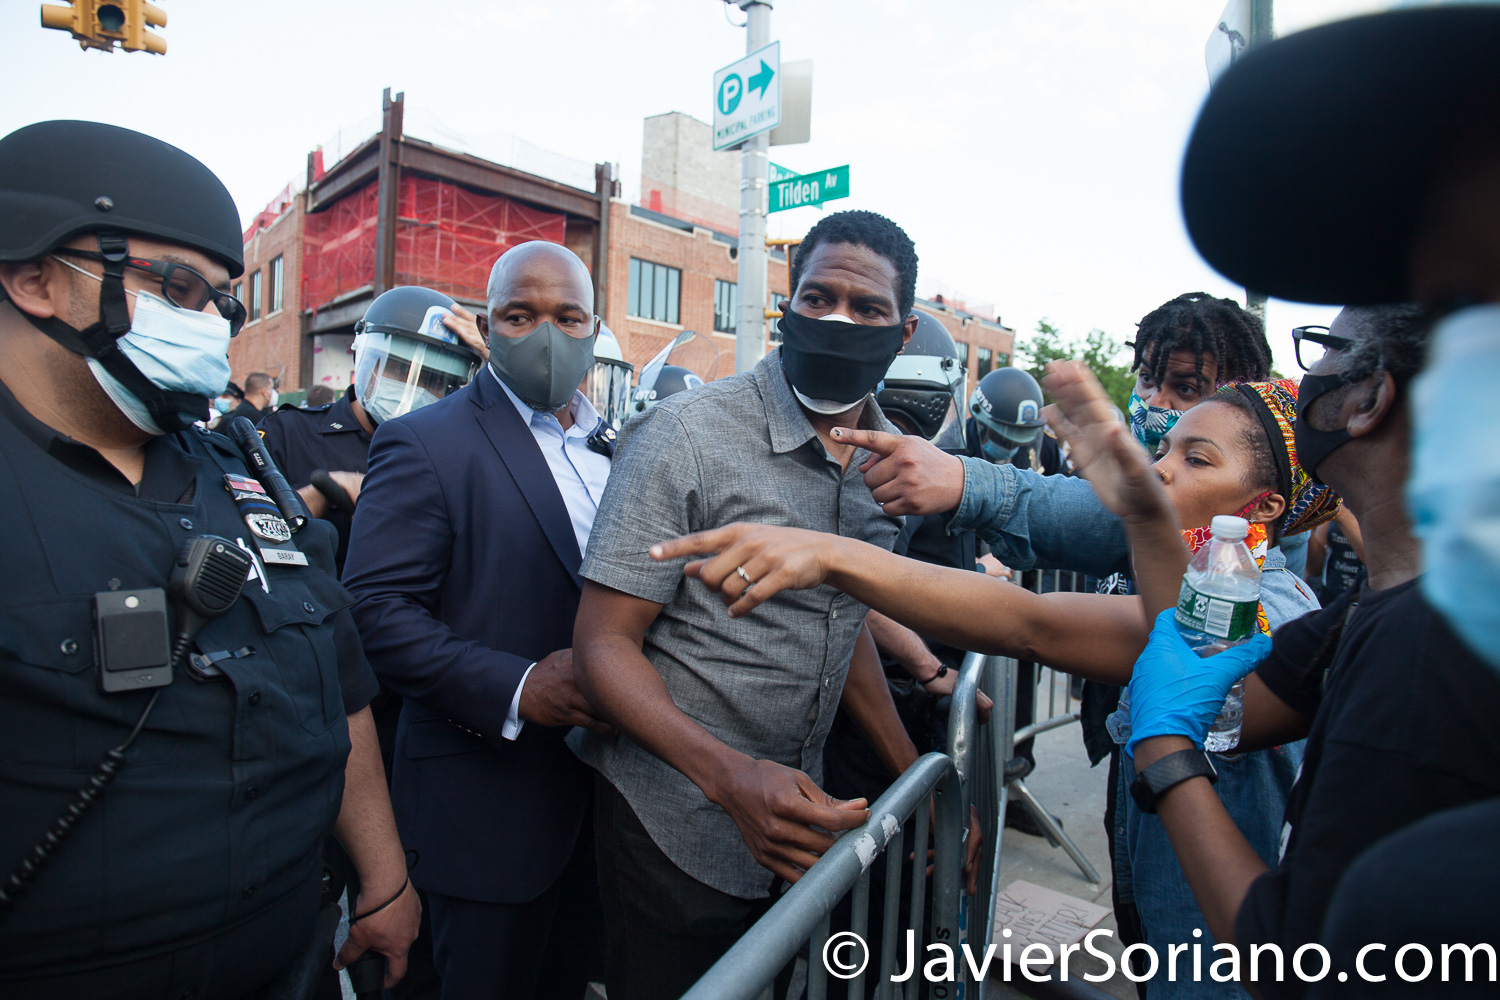 Saturday, May 30, 2020. Brooklyn, New York City - March in Flatbush to demand justice for George Floyd. New York City Public Advocate Jumaane D. Williams attended the march. Photo by Javier Soriano/www.JavierSoriano.com